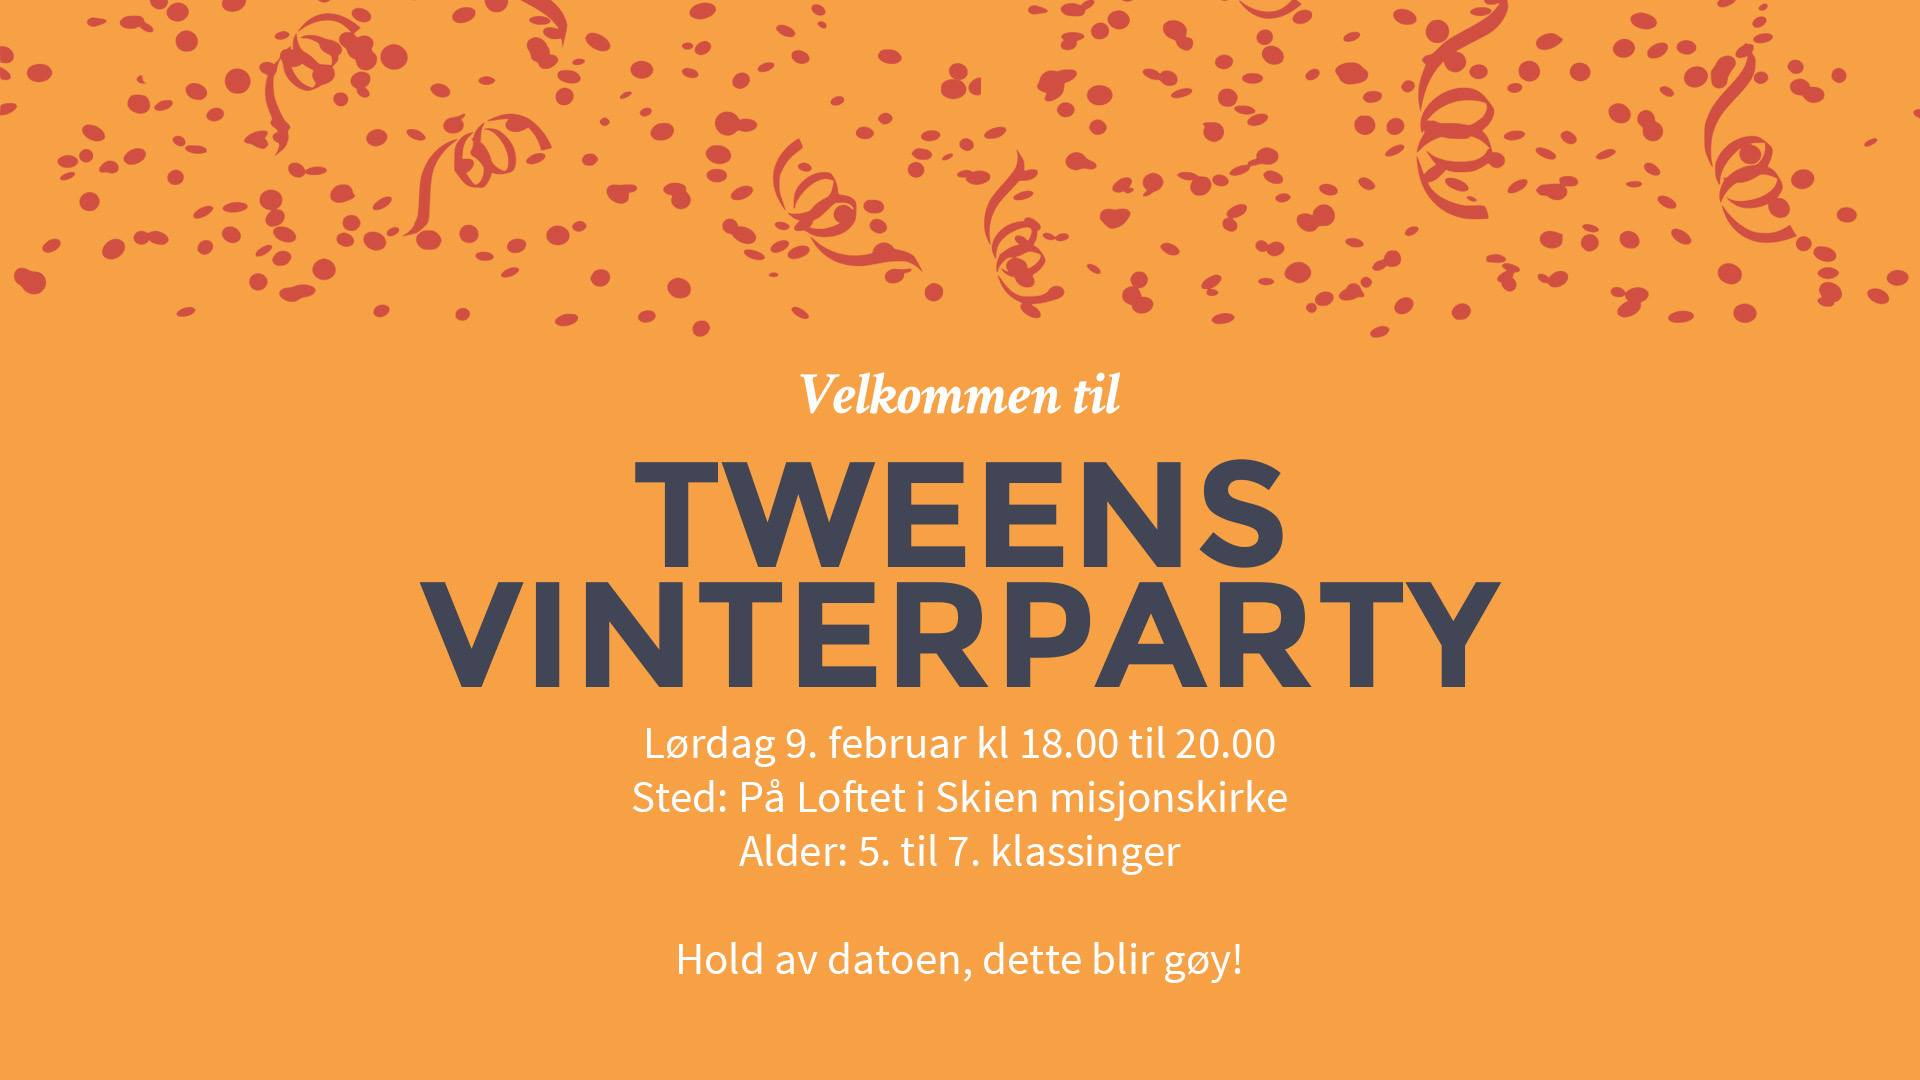 tweens vinterparty